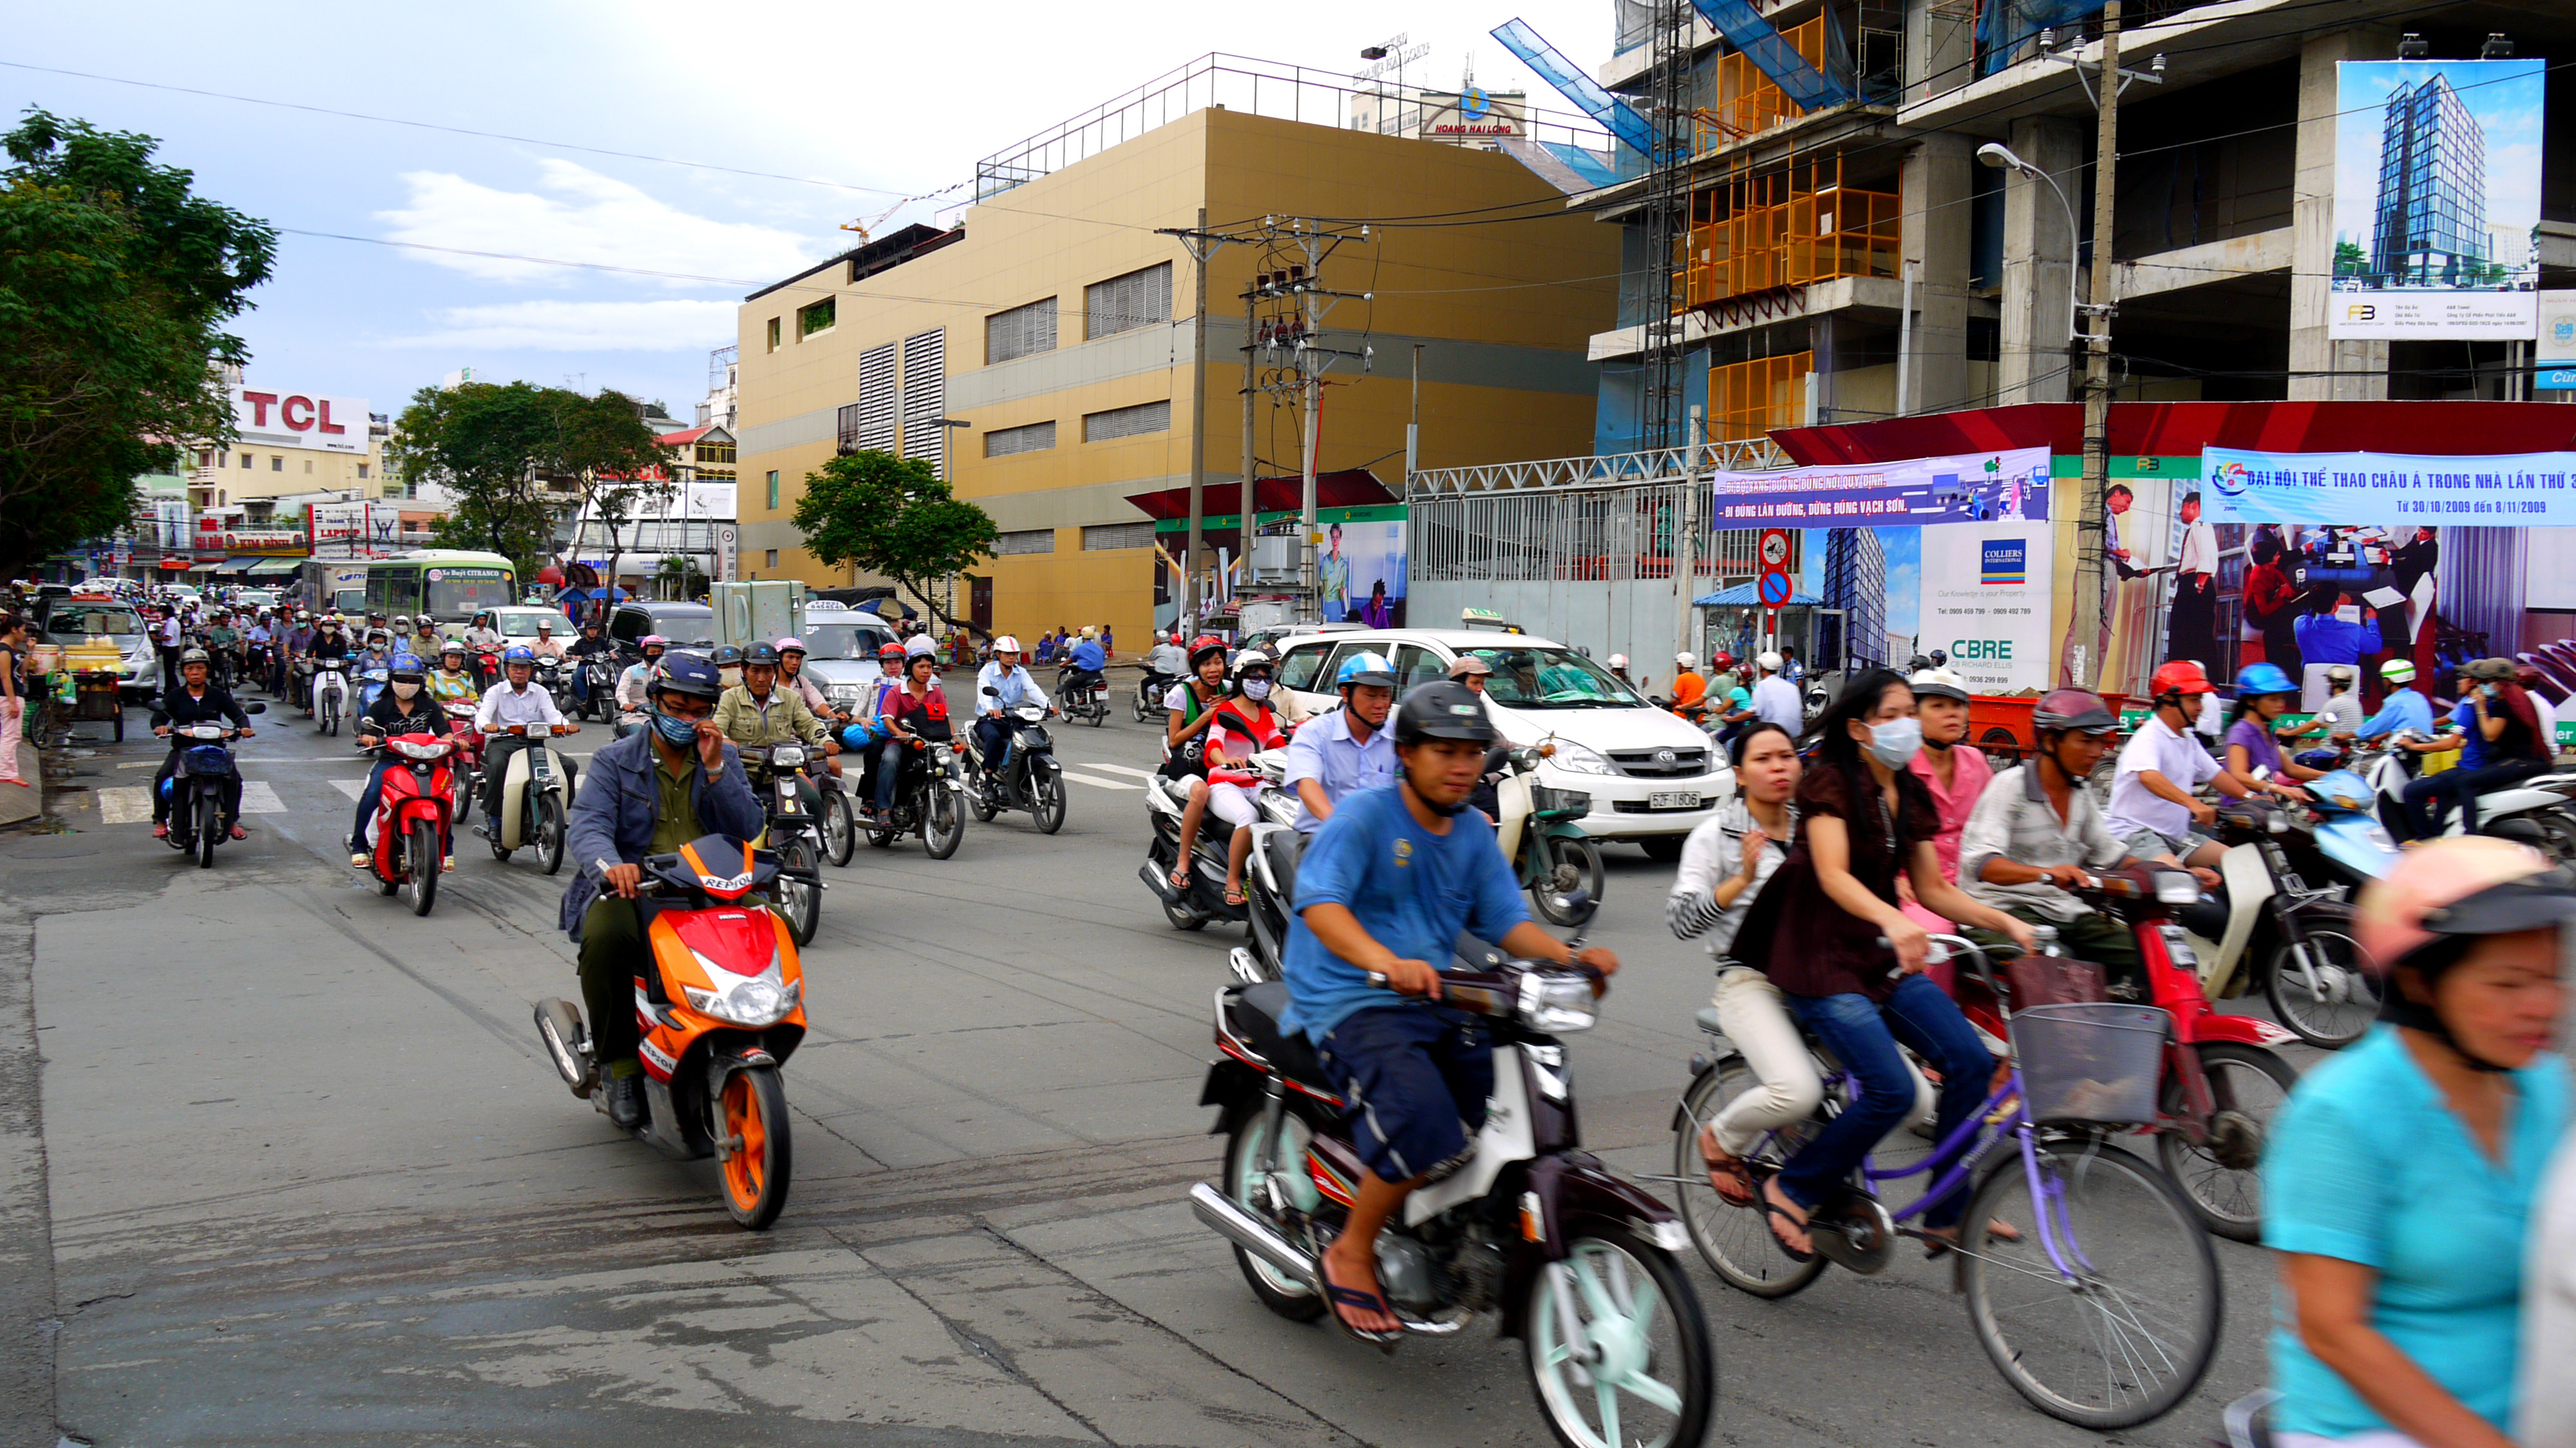 the traffic in vietnam Vietnam's economy is growing fast, and demand for transport services is increasing accordingly mopeds have become the major means of transport in urban agglomerations traffic jams, ­however, are time consuming and cause illness.